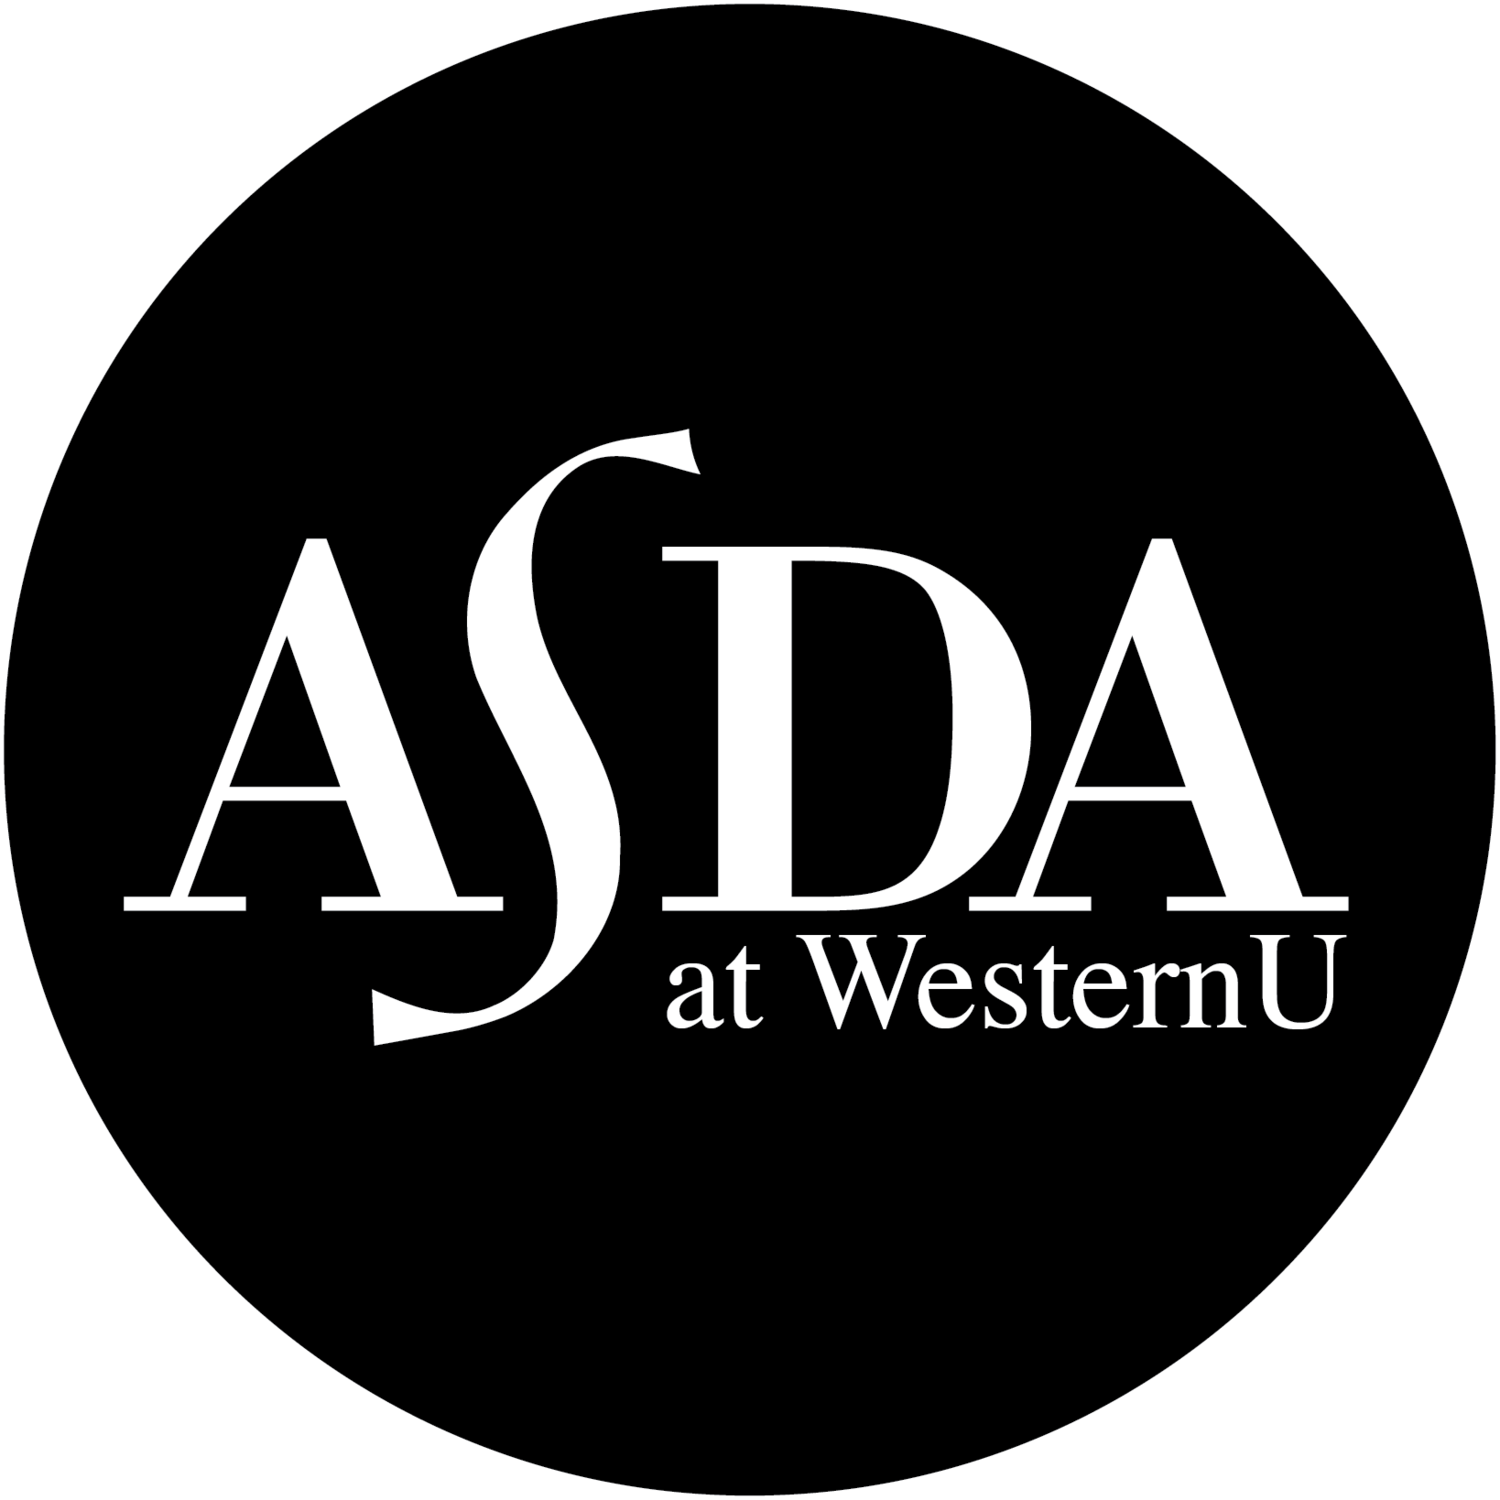 ASDA at Westernu